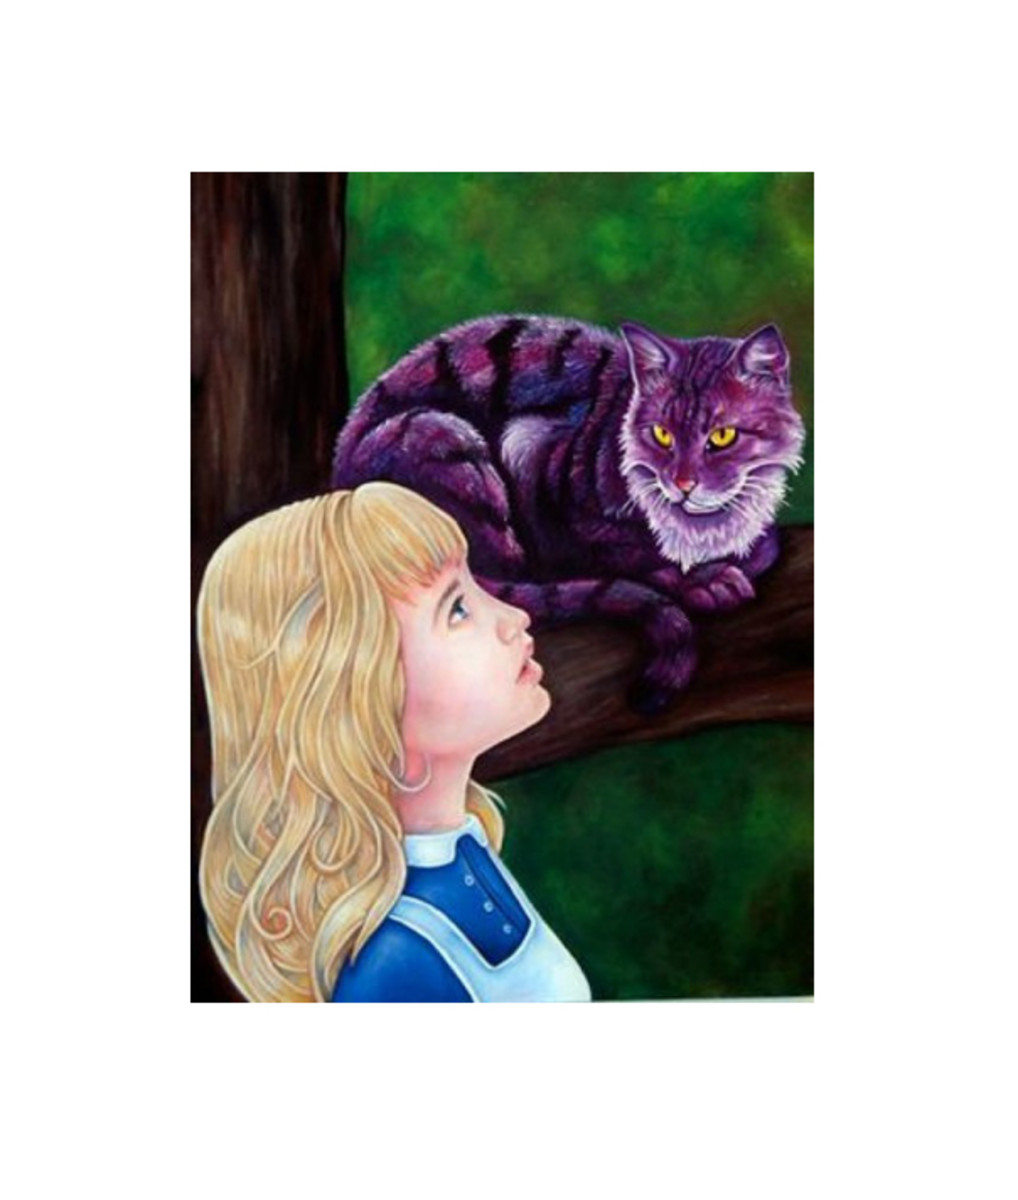 """Alice and the Cheshire Cat"" by Chad Thomas"